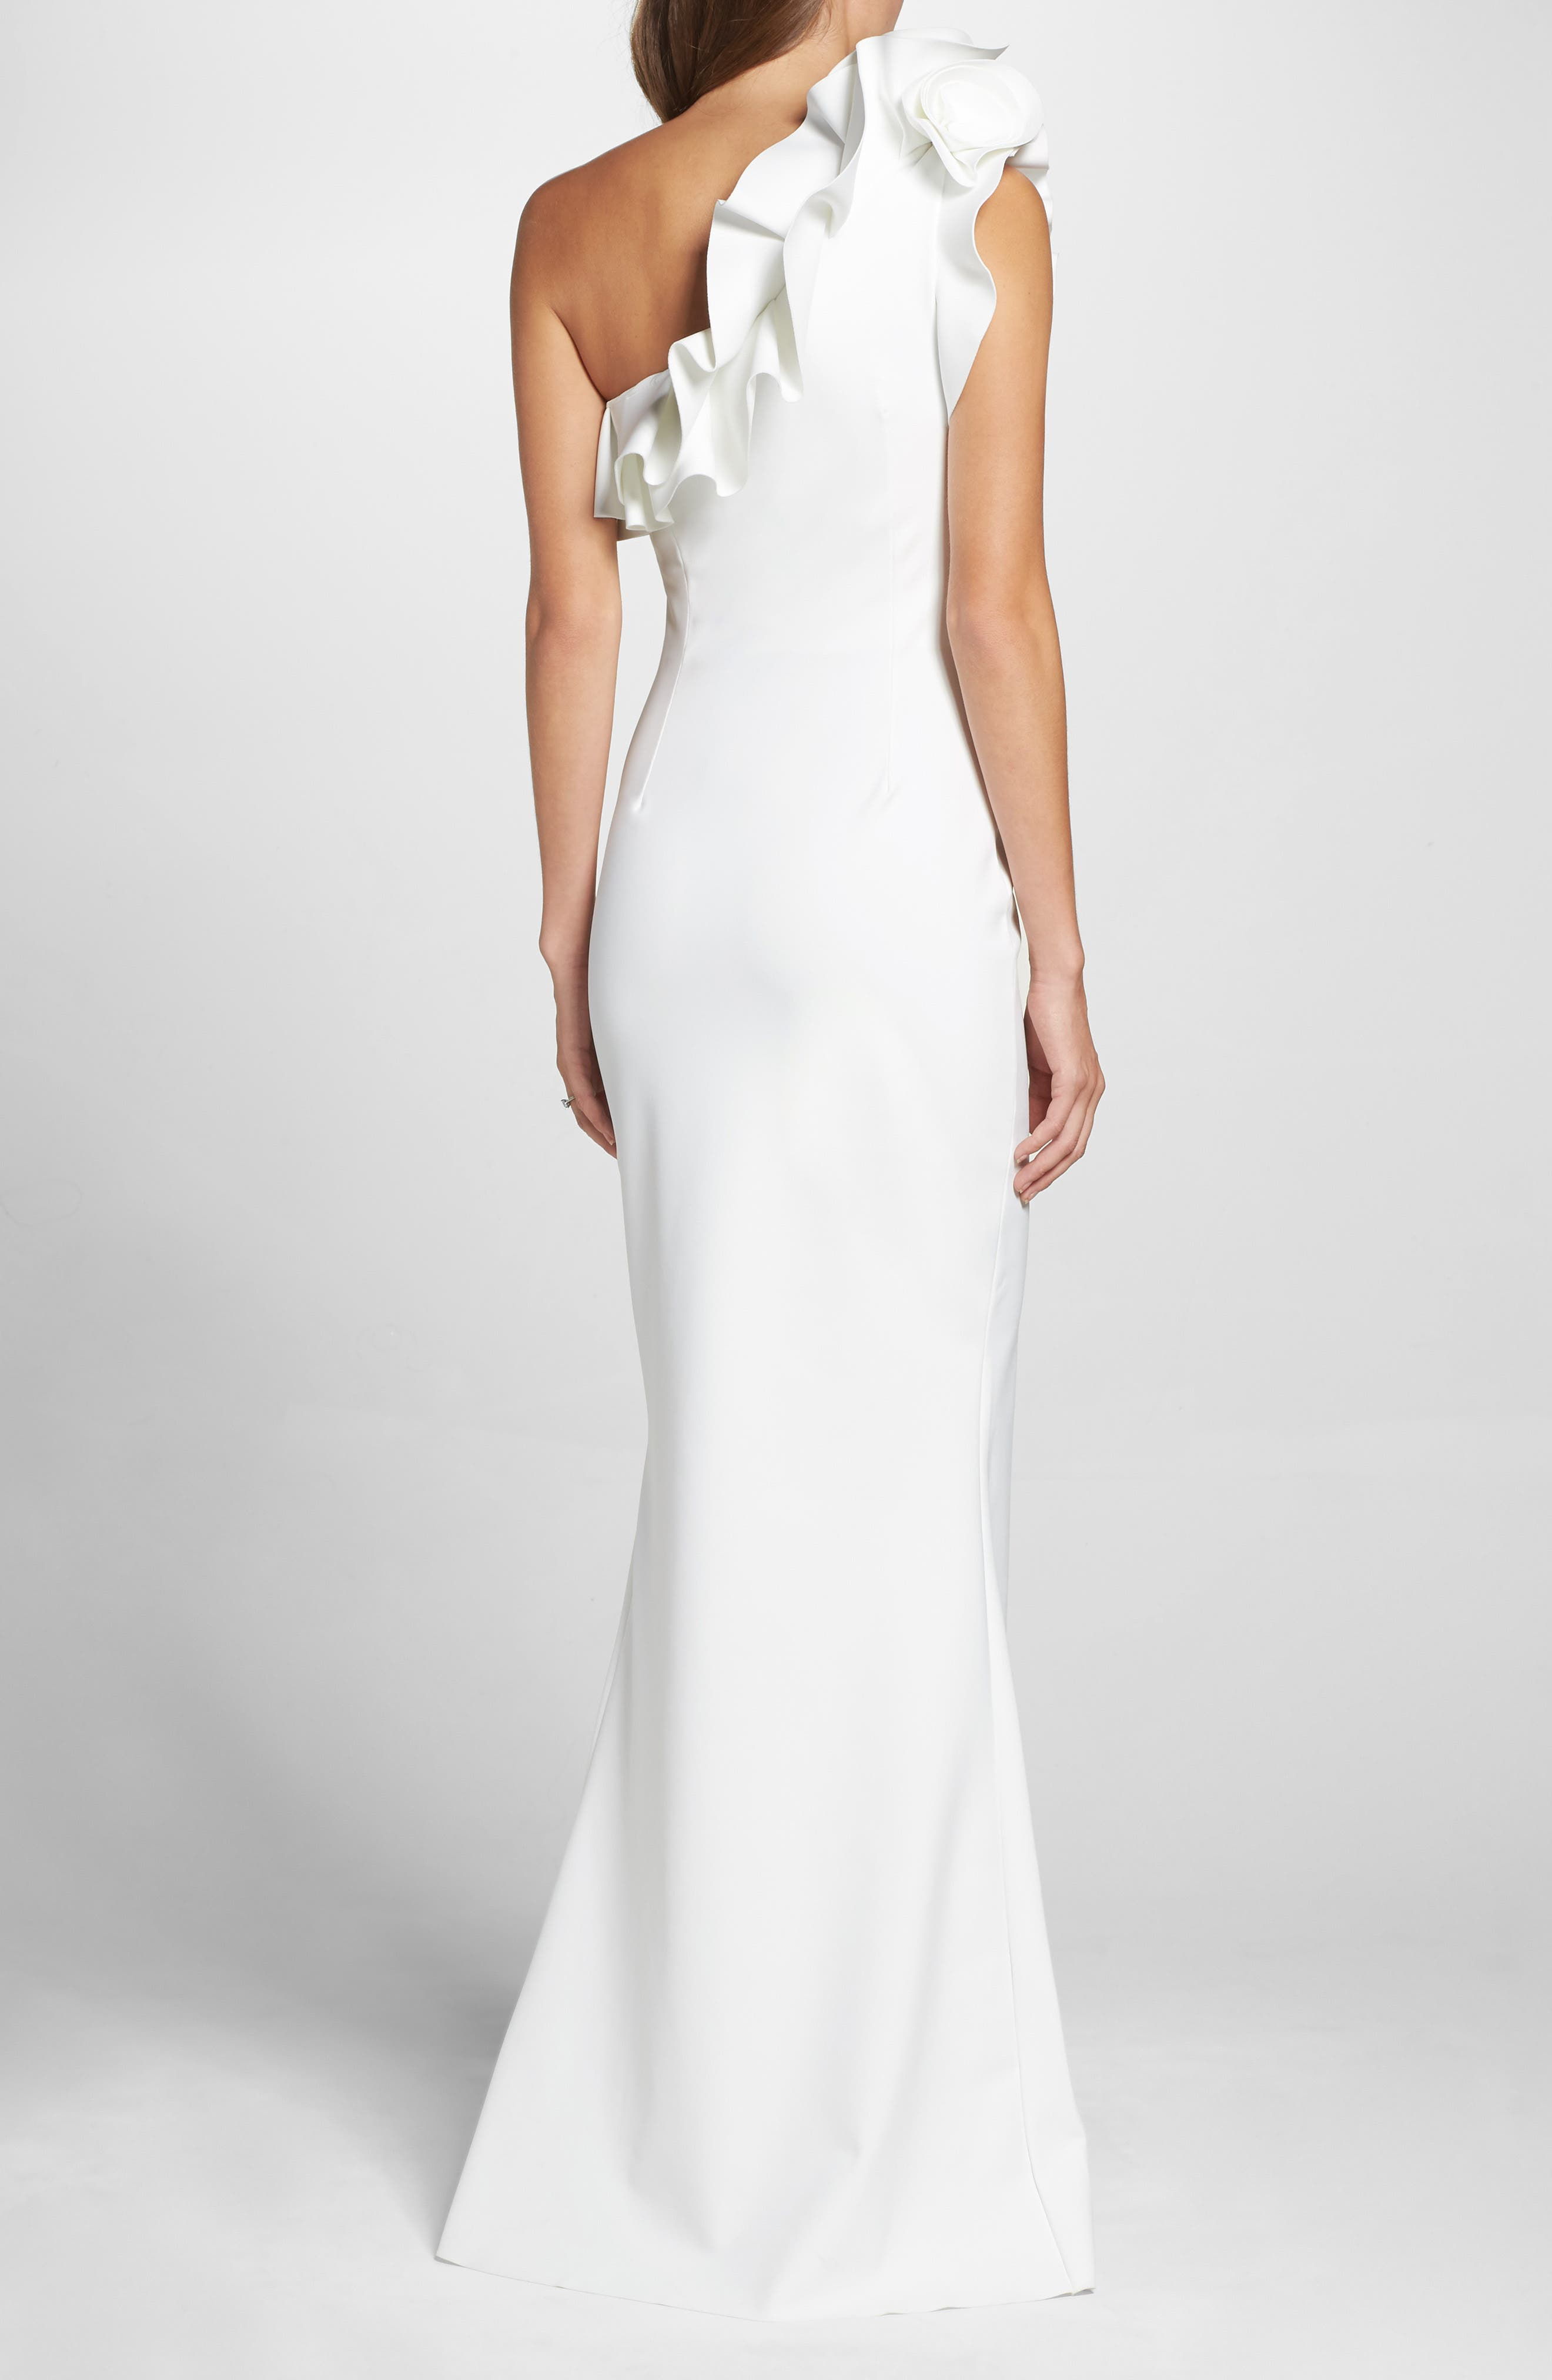 Elisir Ruffle One-Shoulder Gown,                             Alternate thumbnail 2, color,                             White